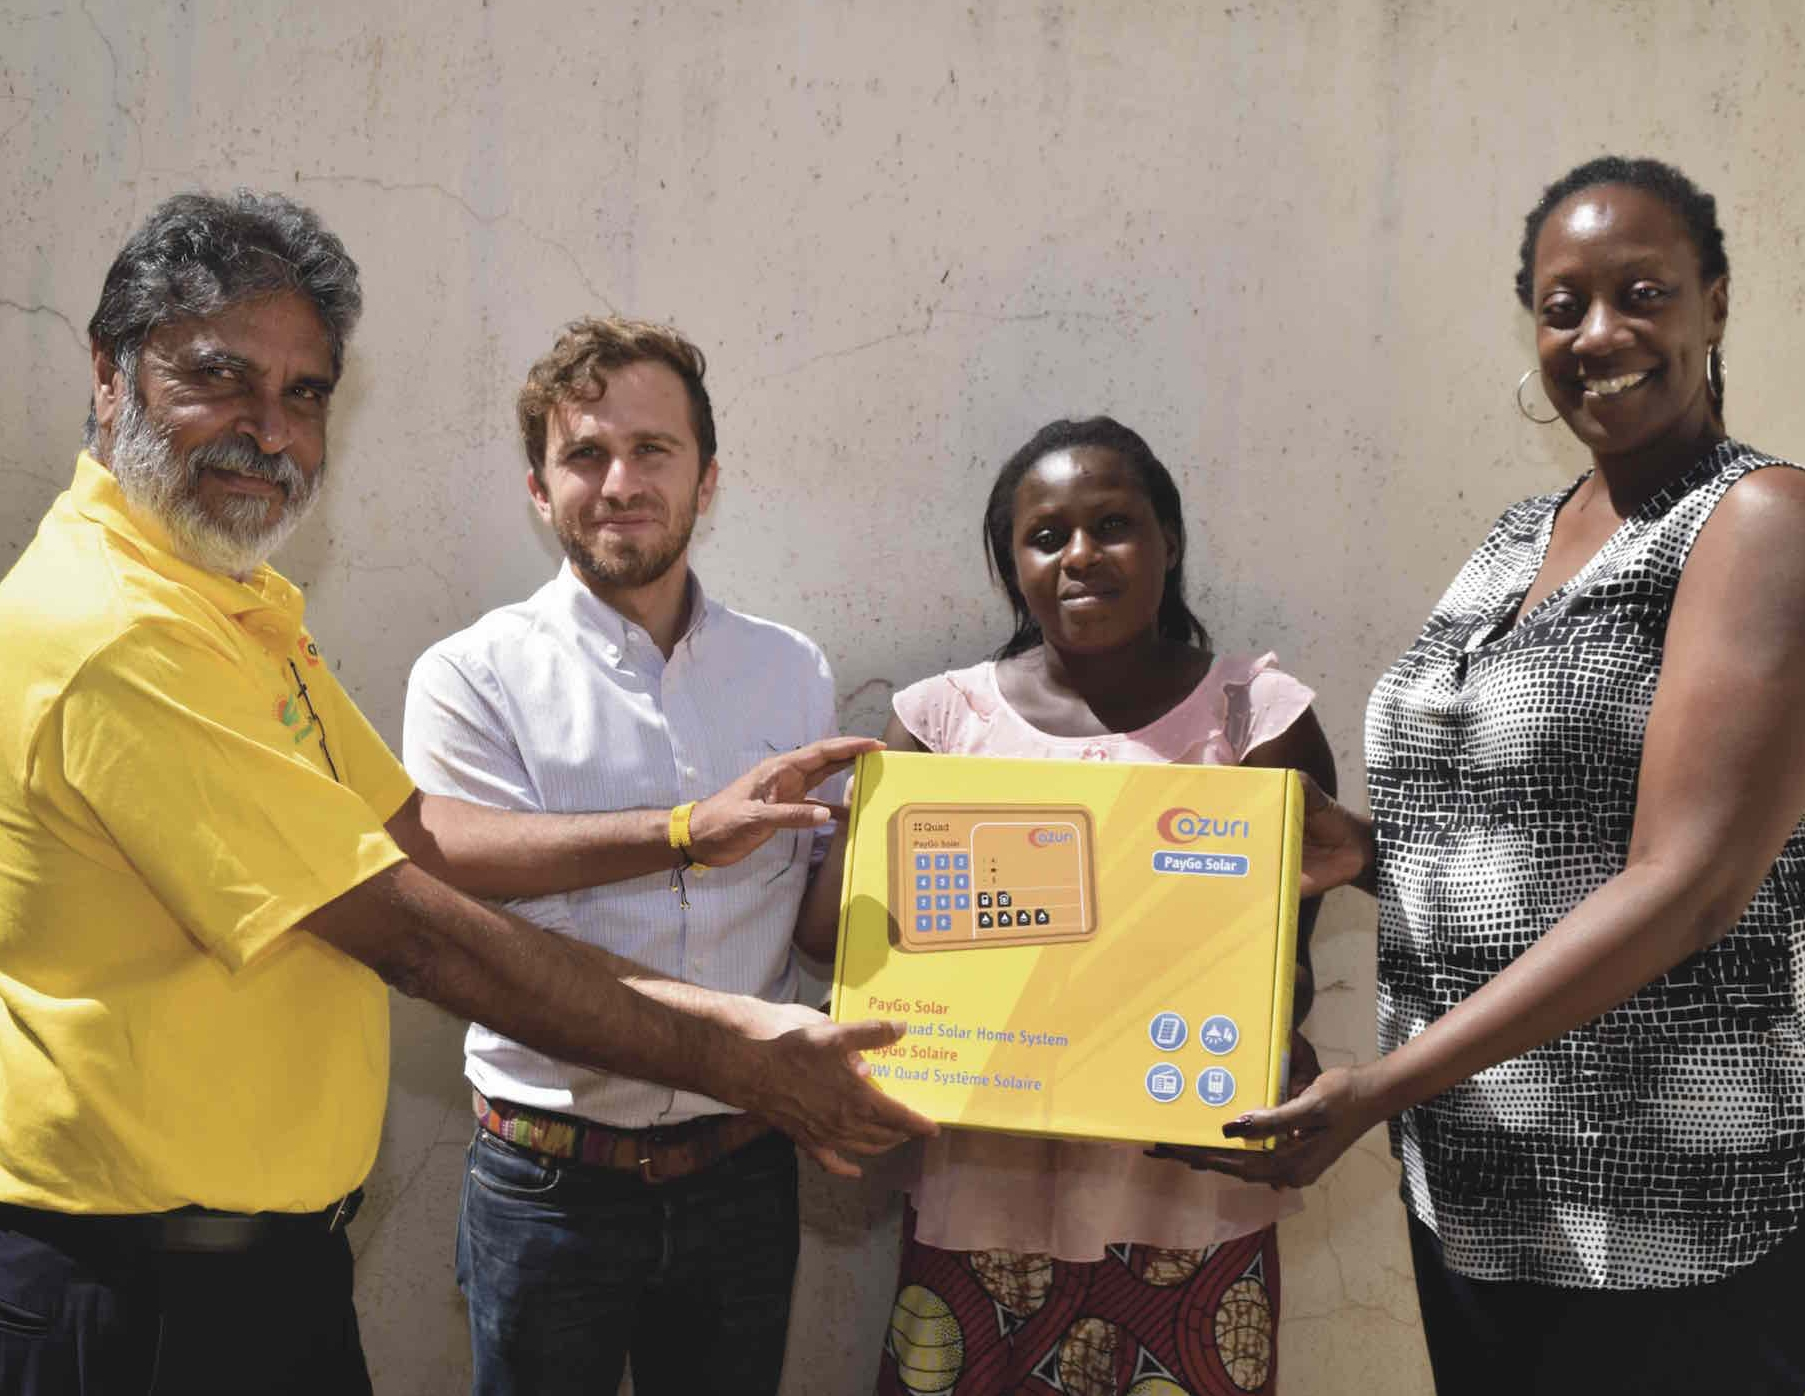 Photo:Raju Haria, CEO of Raj Ushanga House (left), Daniel Goldfarb, CEO of Lendable (second from left), and Sharon Arungu-Olende, head of East Africa for Lendable (right), provide a PAYGo solar system to a customer.